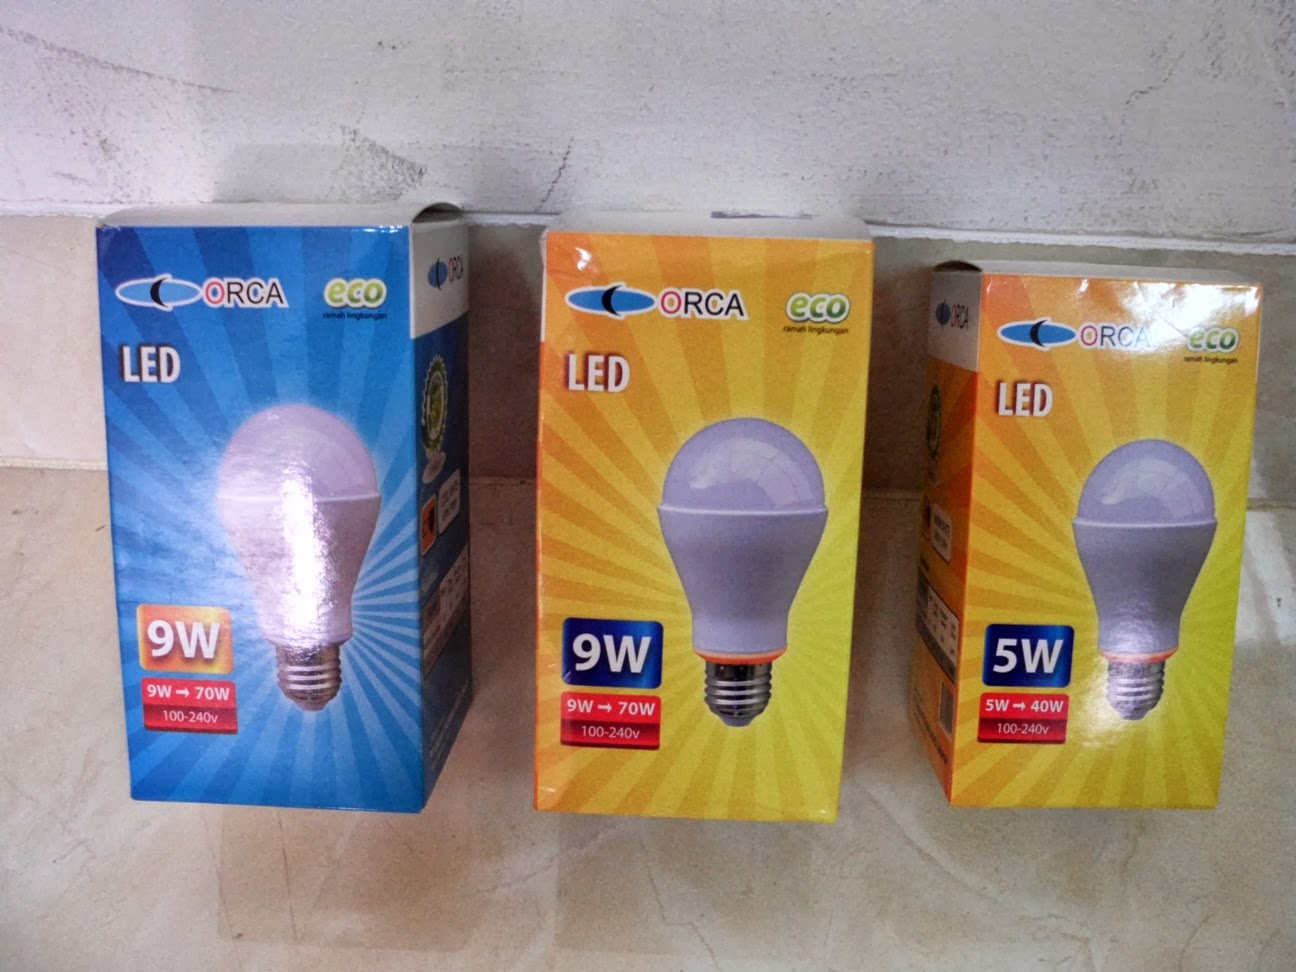 ORCA LED BULBS